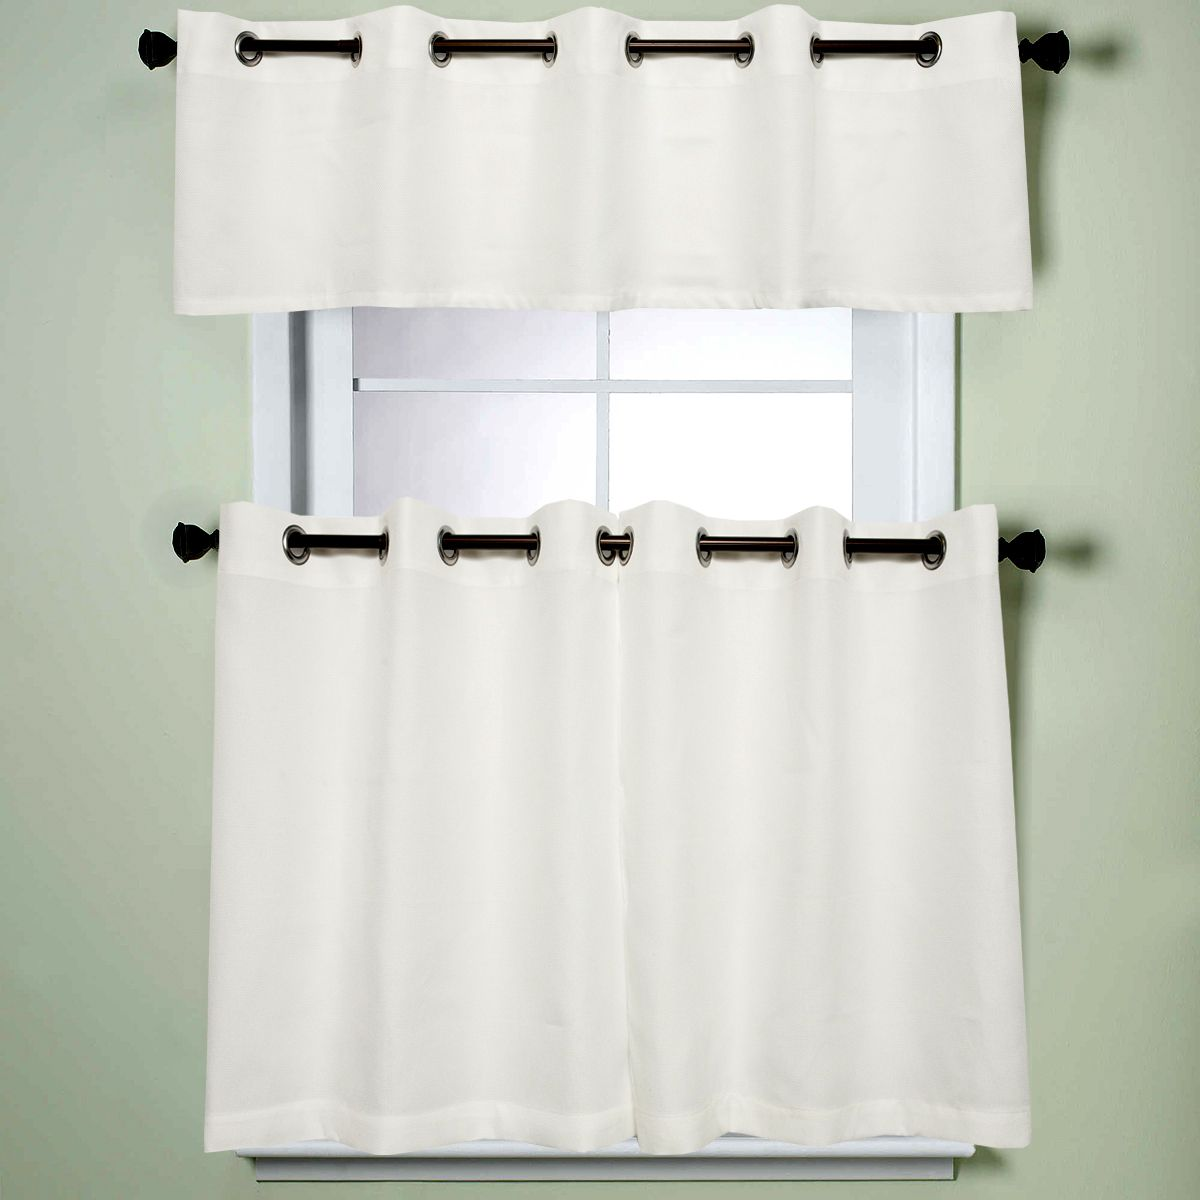 N Modern Sublte Textured Solid White Kitchen Tiered Valance Curtains ...